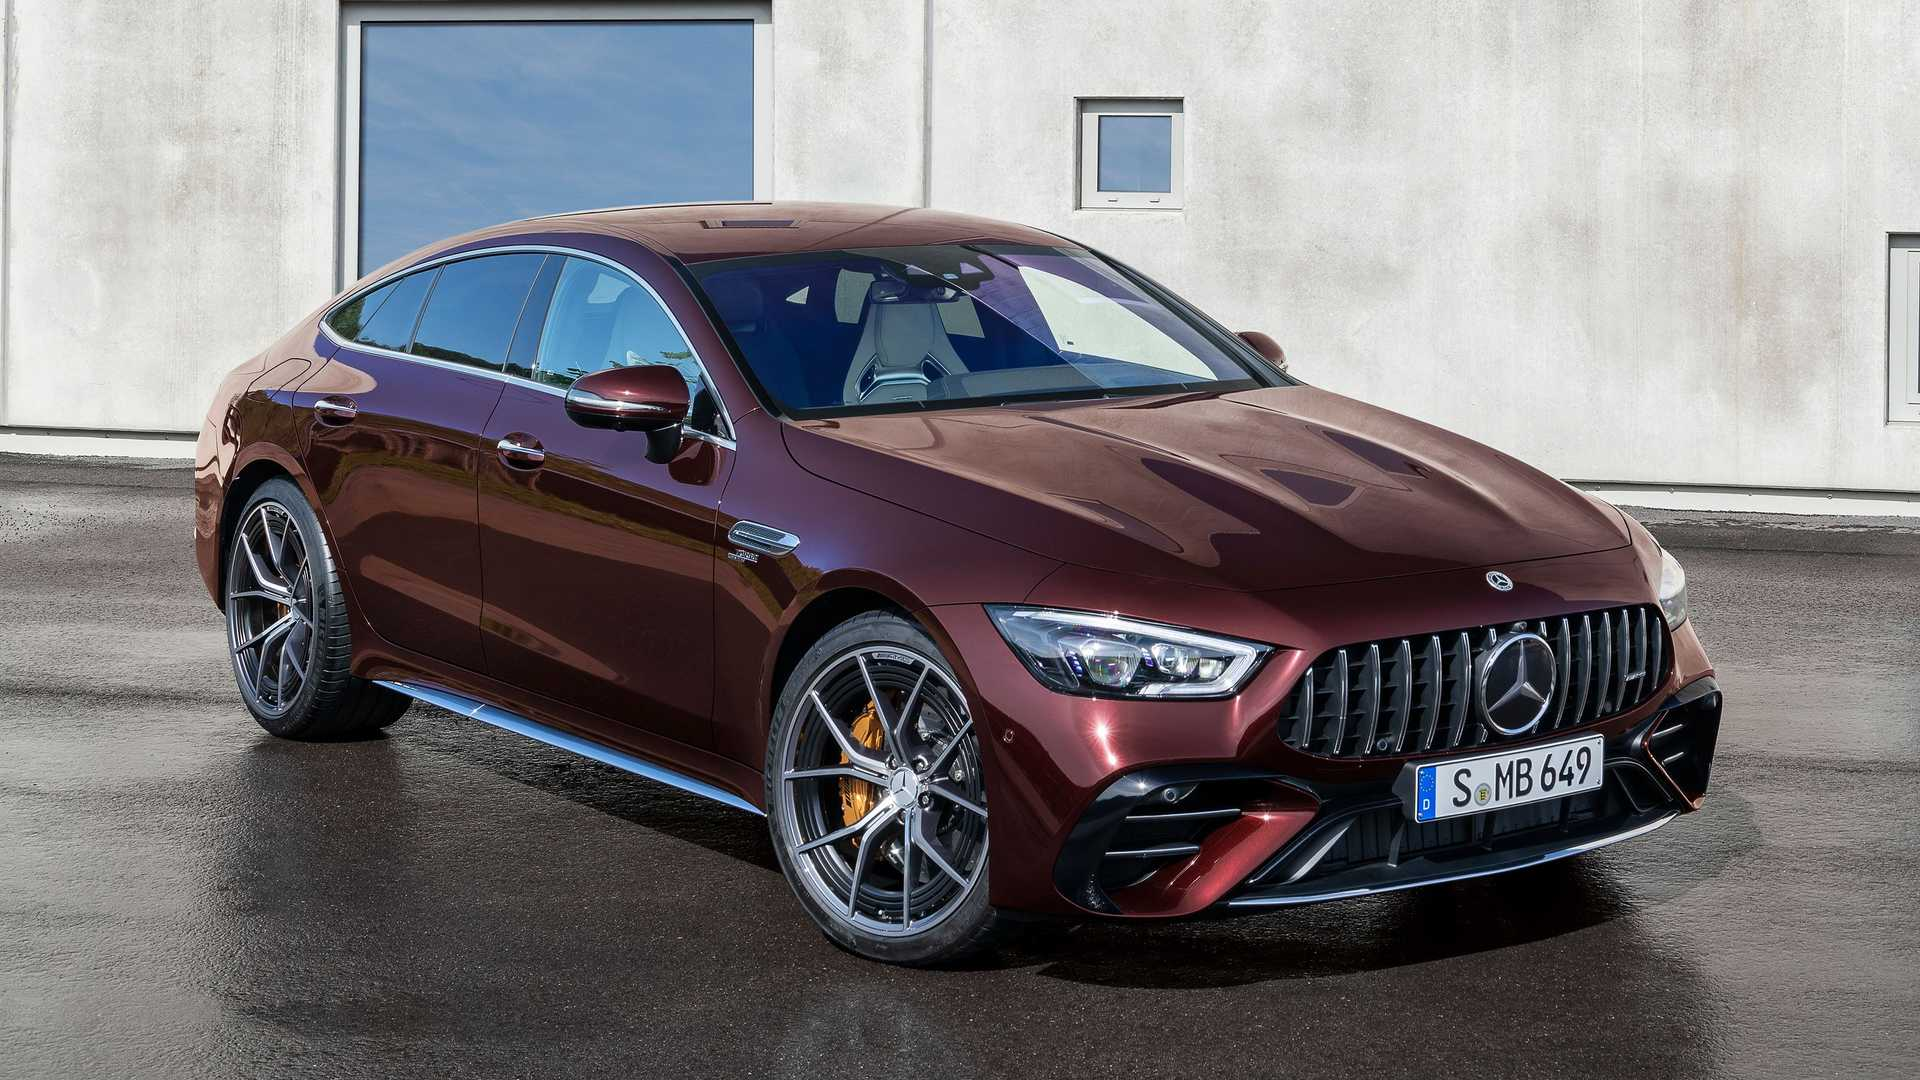 2022 Mercedes-AMG GT 4-Door Sharpens Up With Fresh Cabin, Special Trim